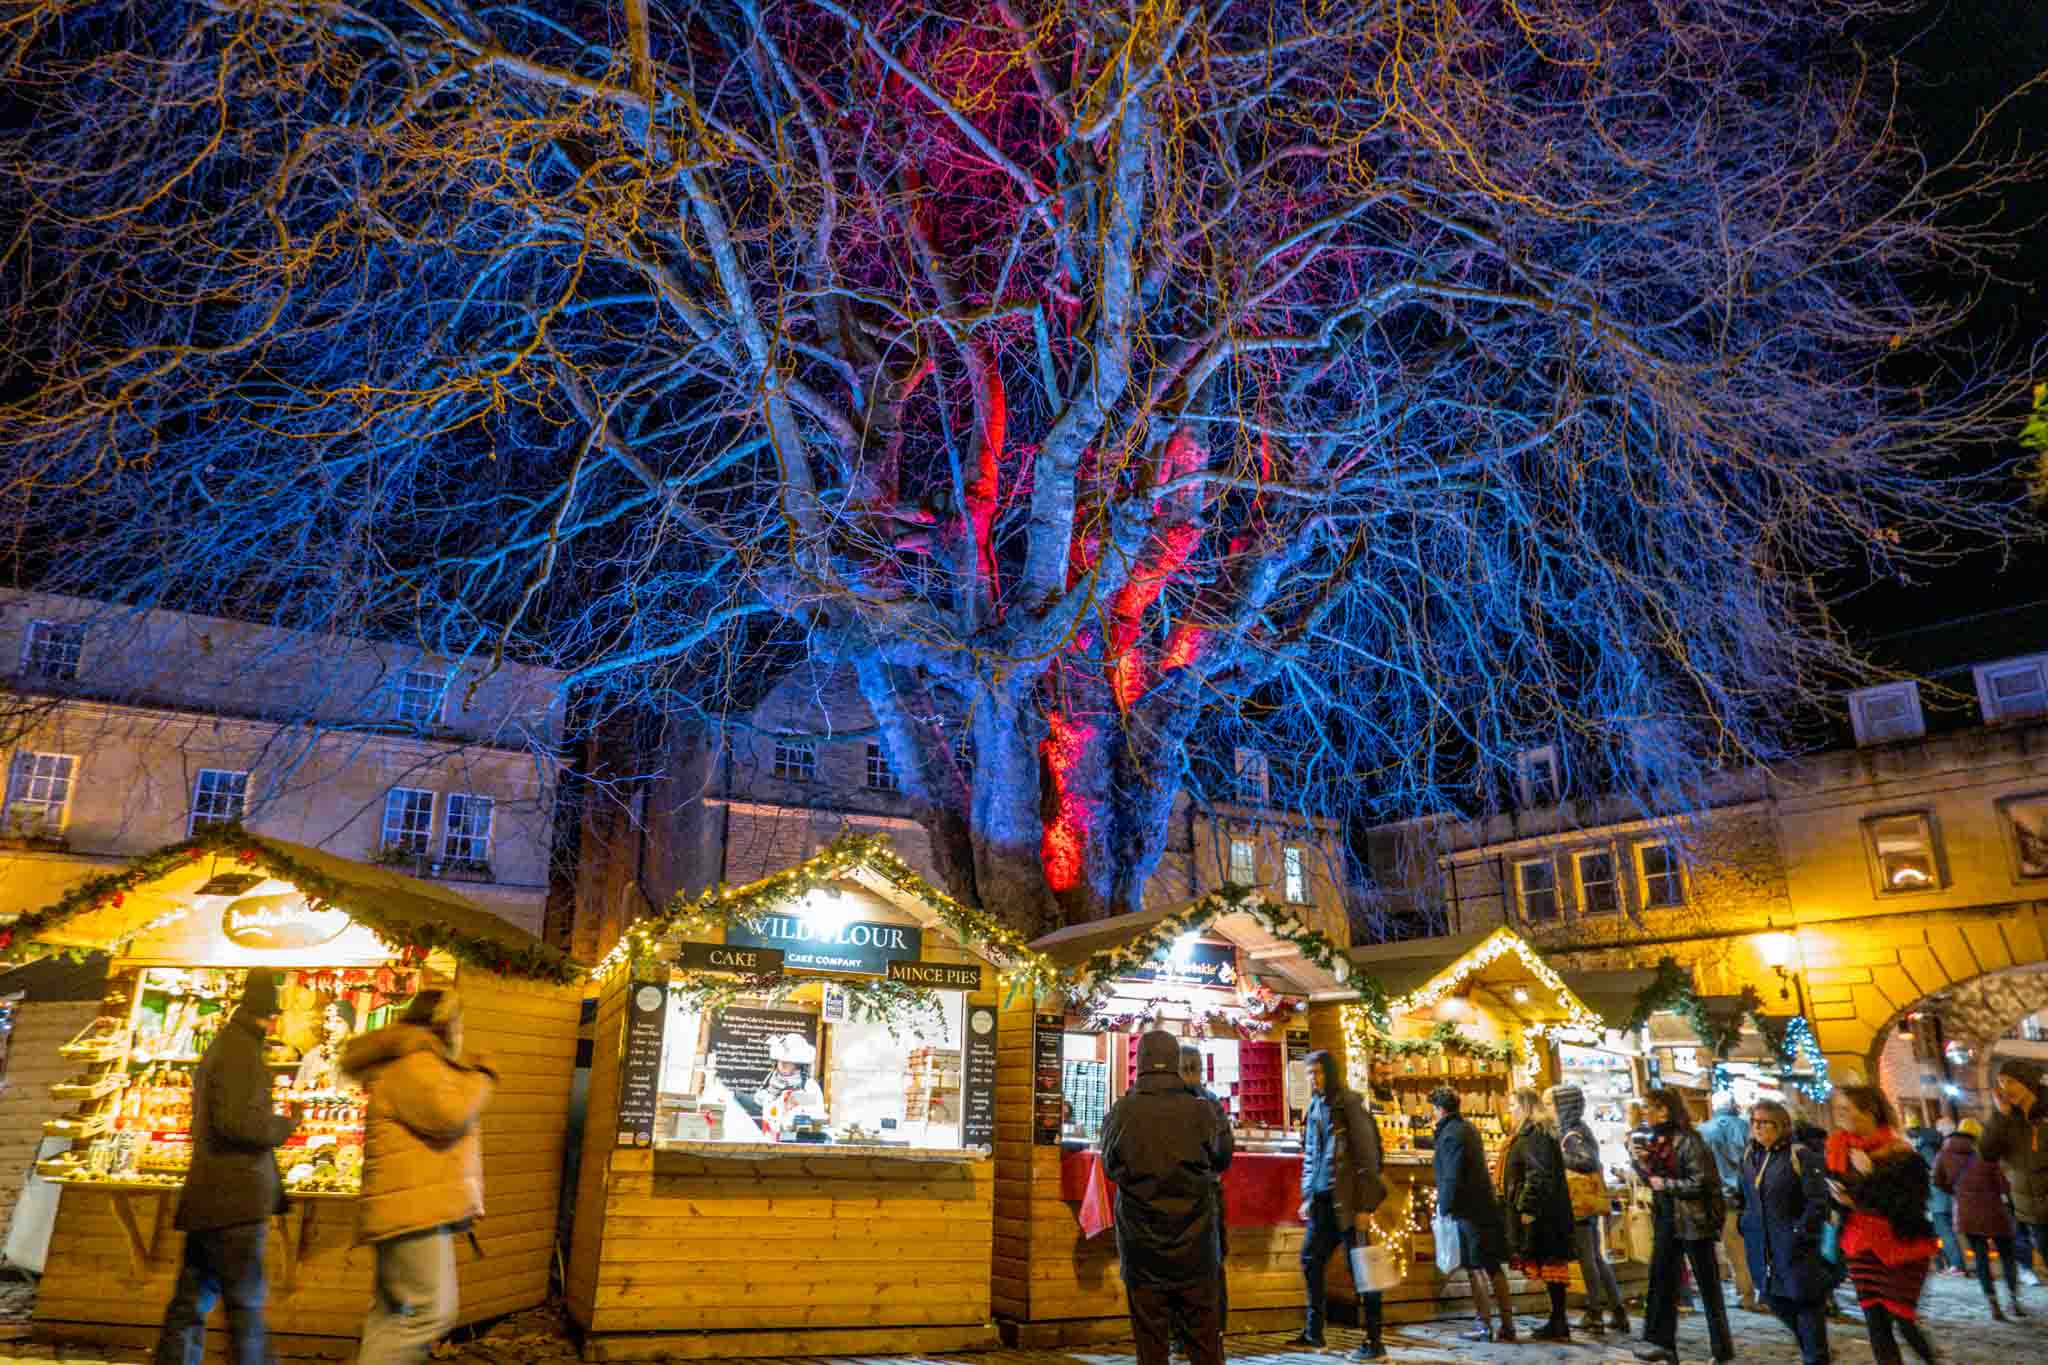 Christmas market stalls at night in front of trees lit with purple and red lights